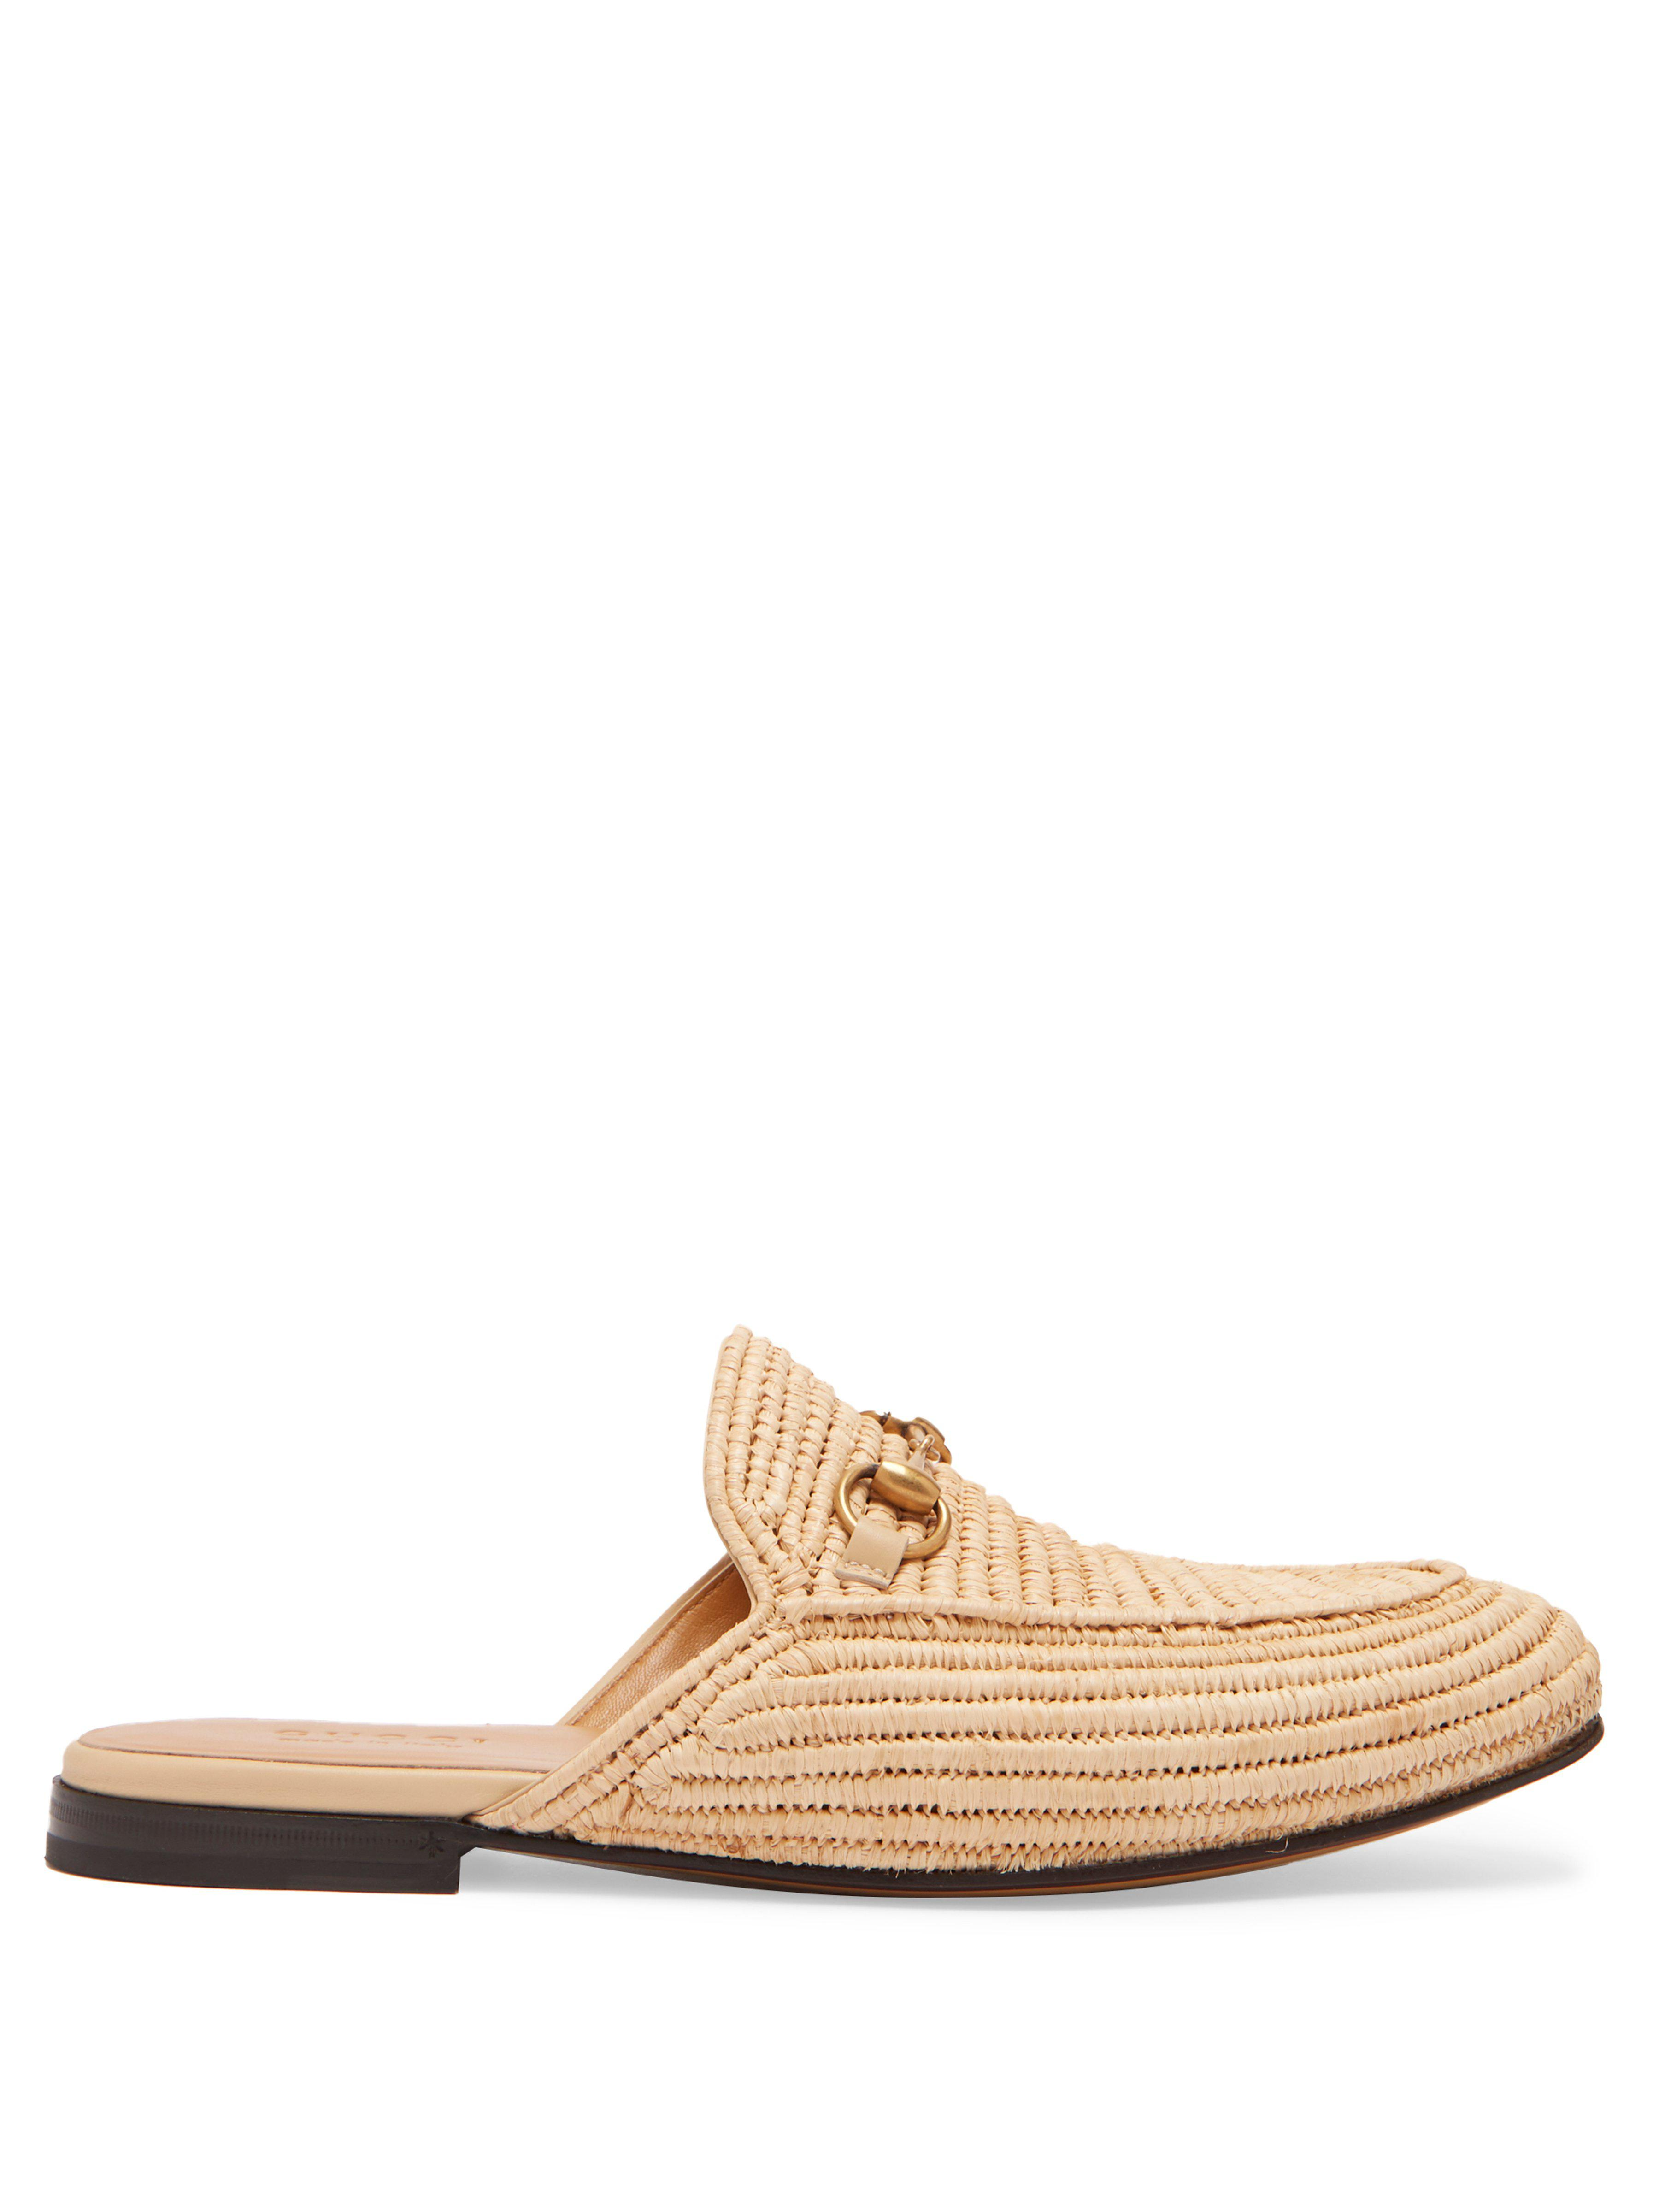 4b18f47a207 Gucci King Woven Straw Backless Loafers for Men - Lyst